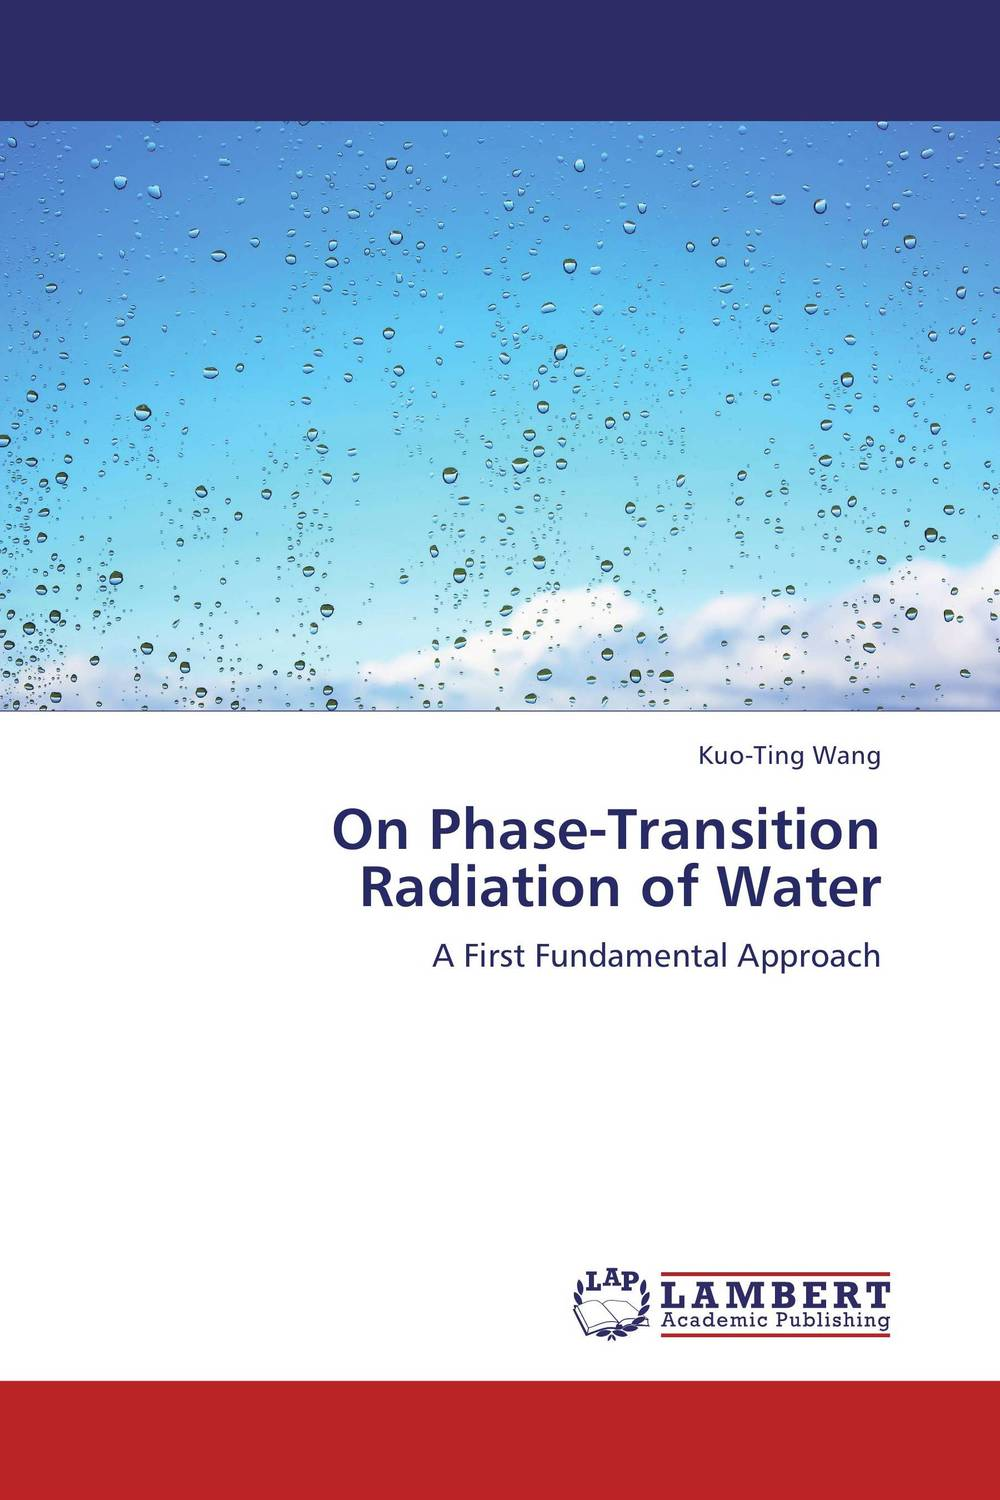 On Phase-Transition Radiation of Water